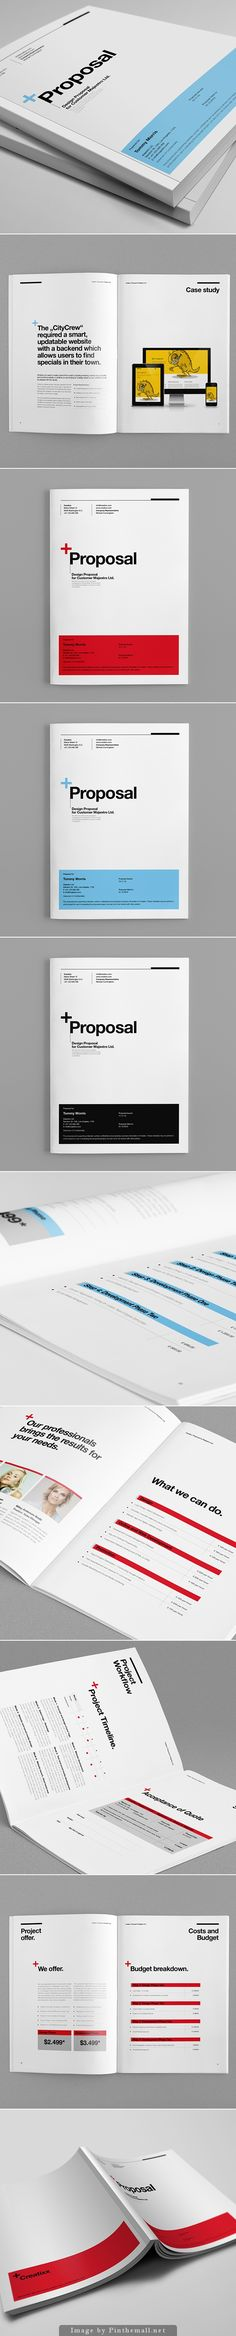 Proposal Template Suisse Design with Invoice - created via http://pinthemall.net